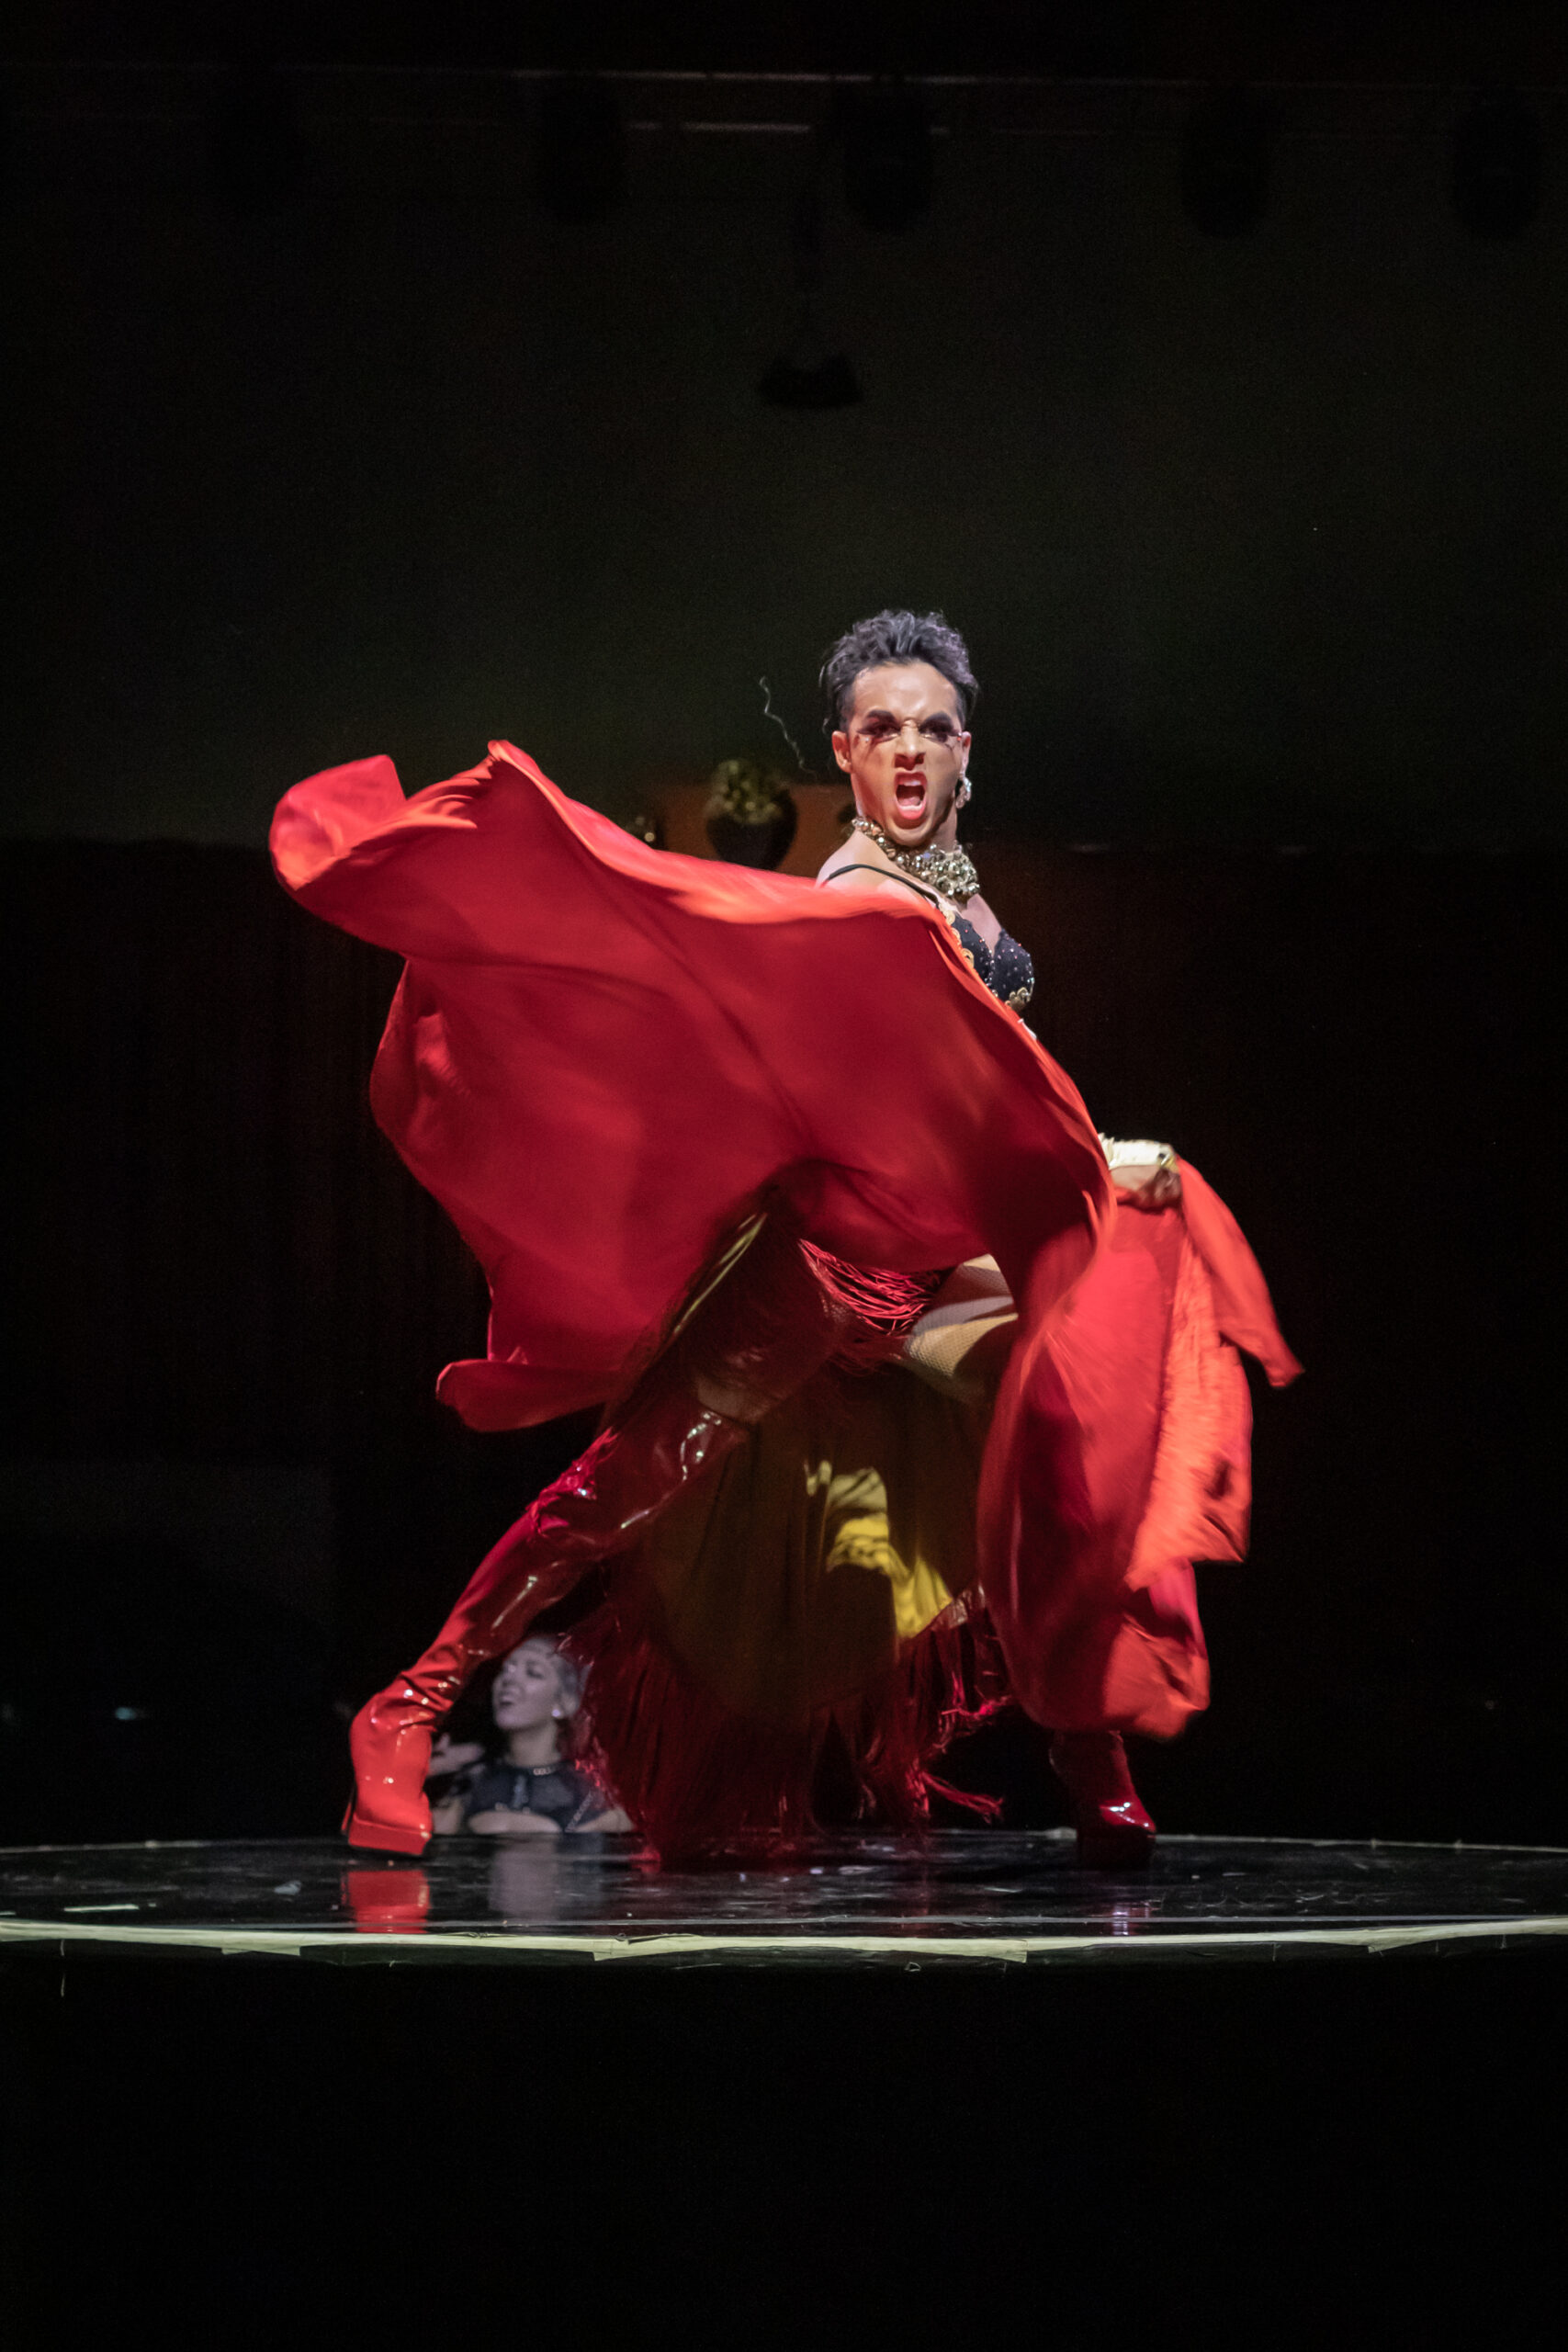 Image of Paloma performing at Vau de Vire's The Soiled Dove dinner theater Under the Tortona Big Top in Downtown Oakland